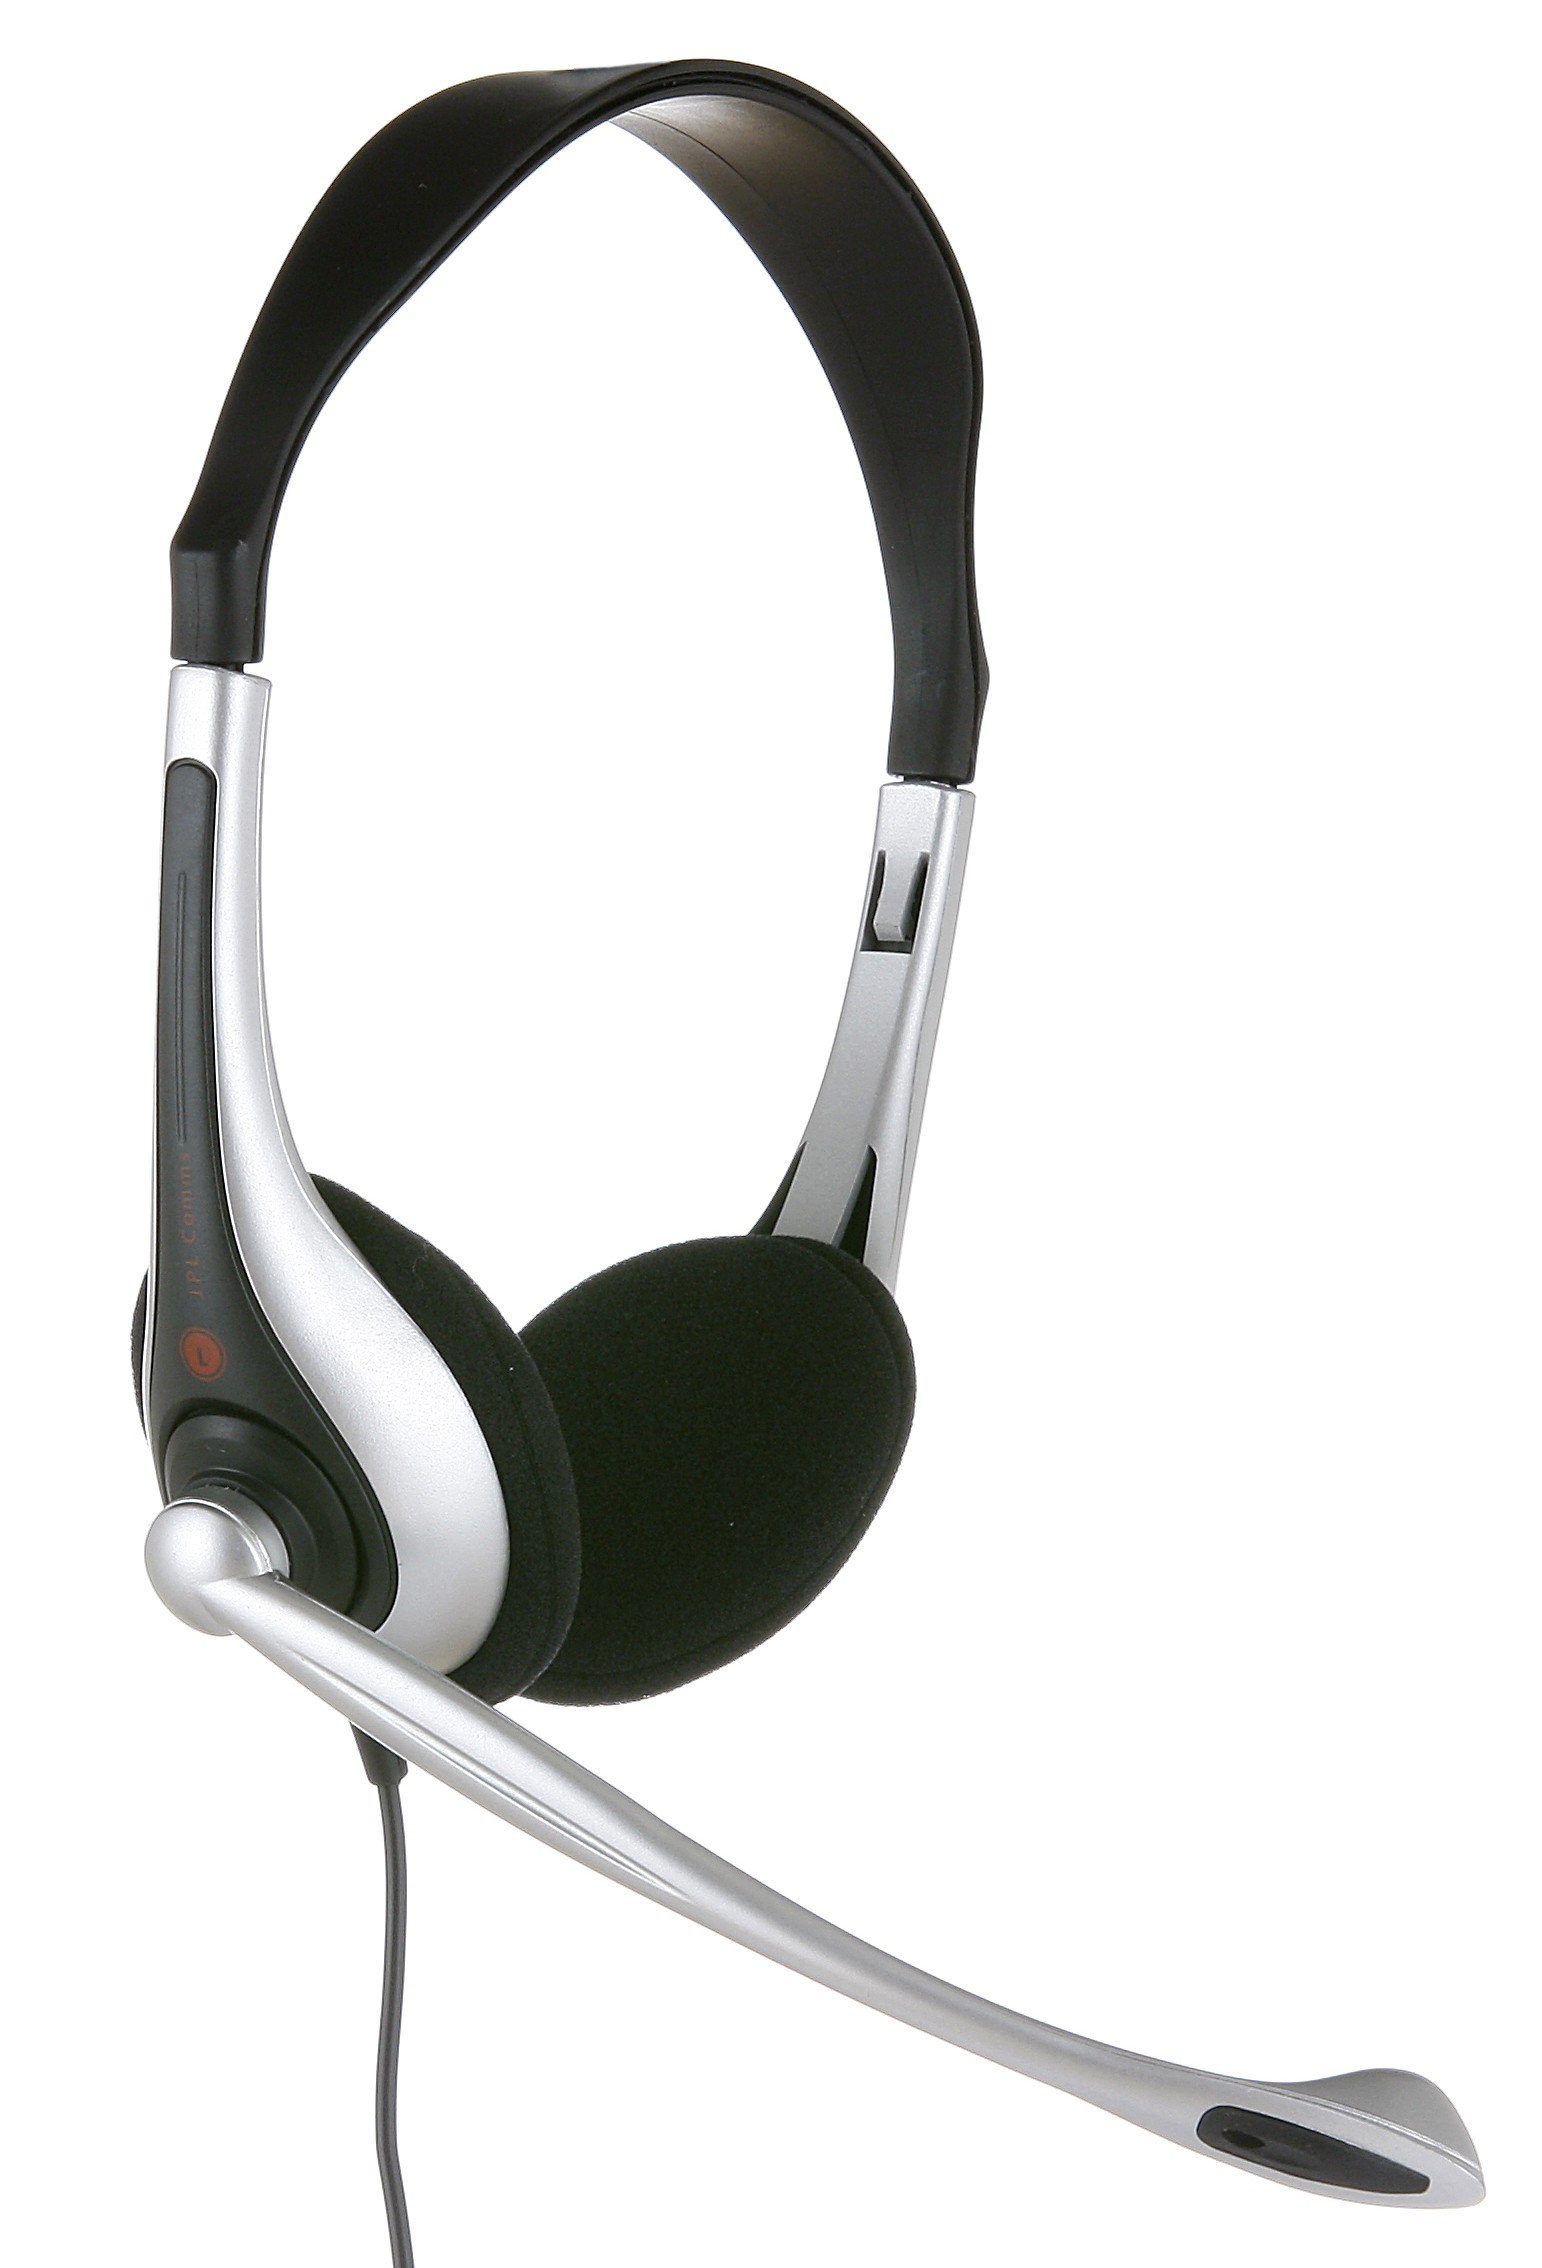 JPL 302 Binaural USB Headset